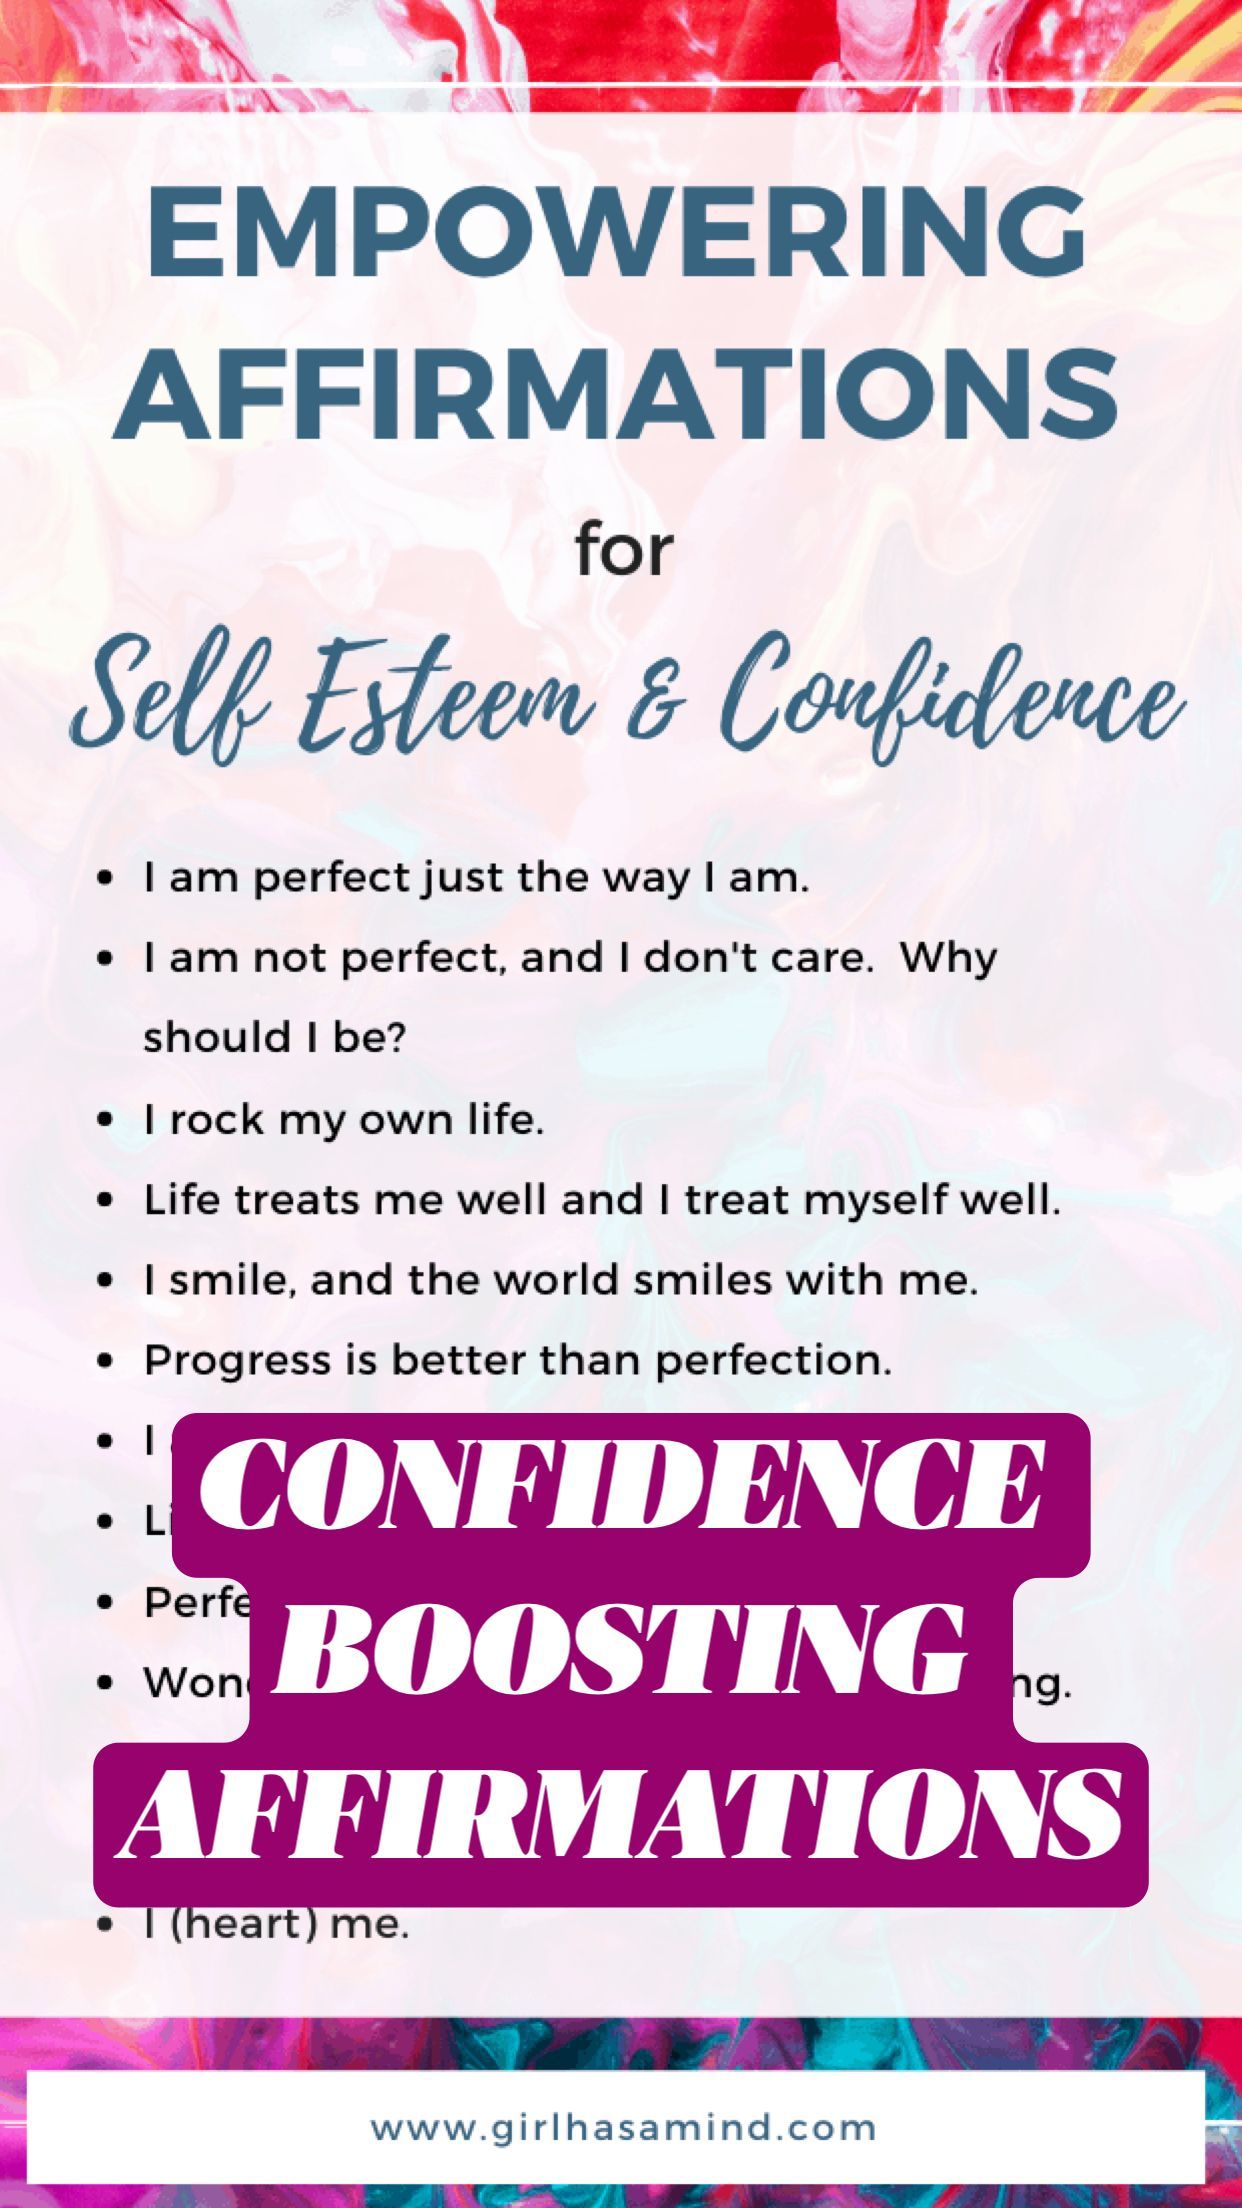 CONFIDENCE BOOSTING AFFIRMATIONS